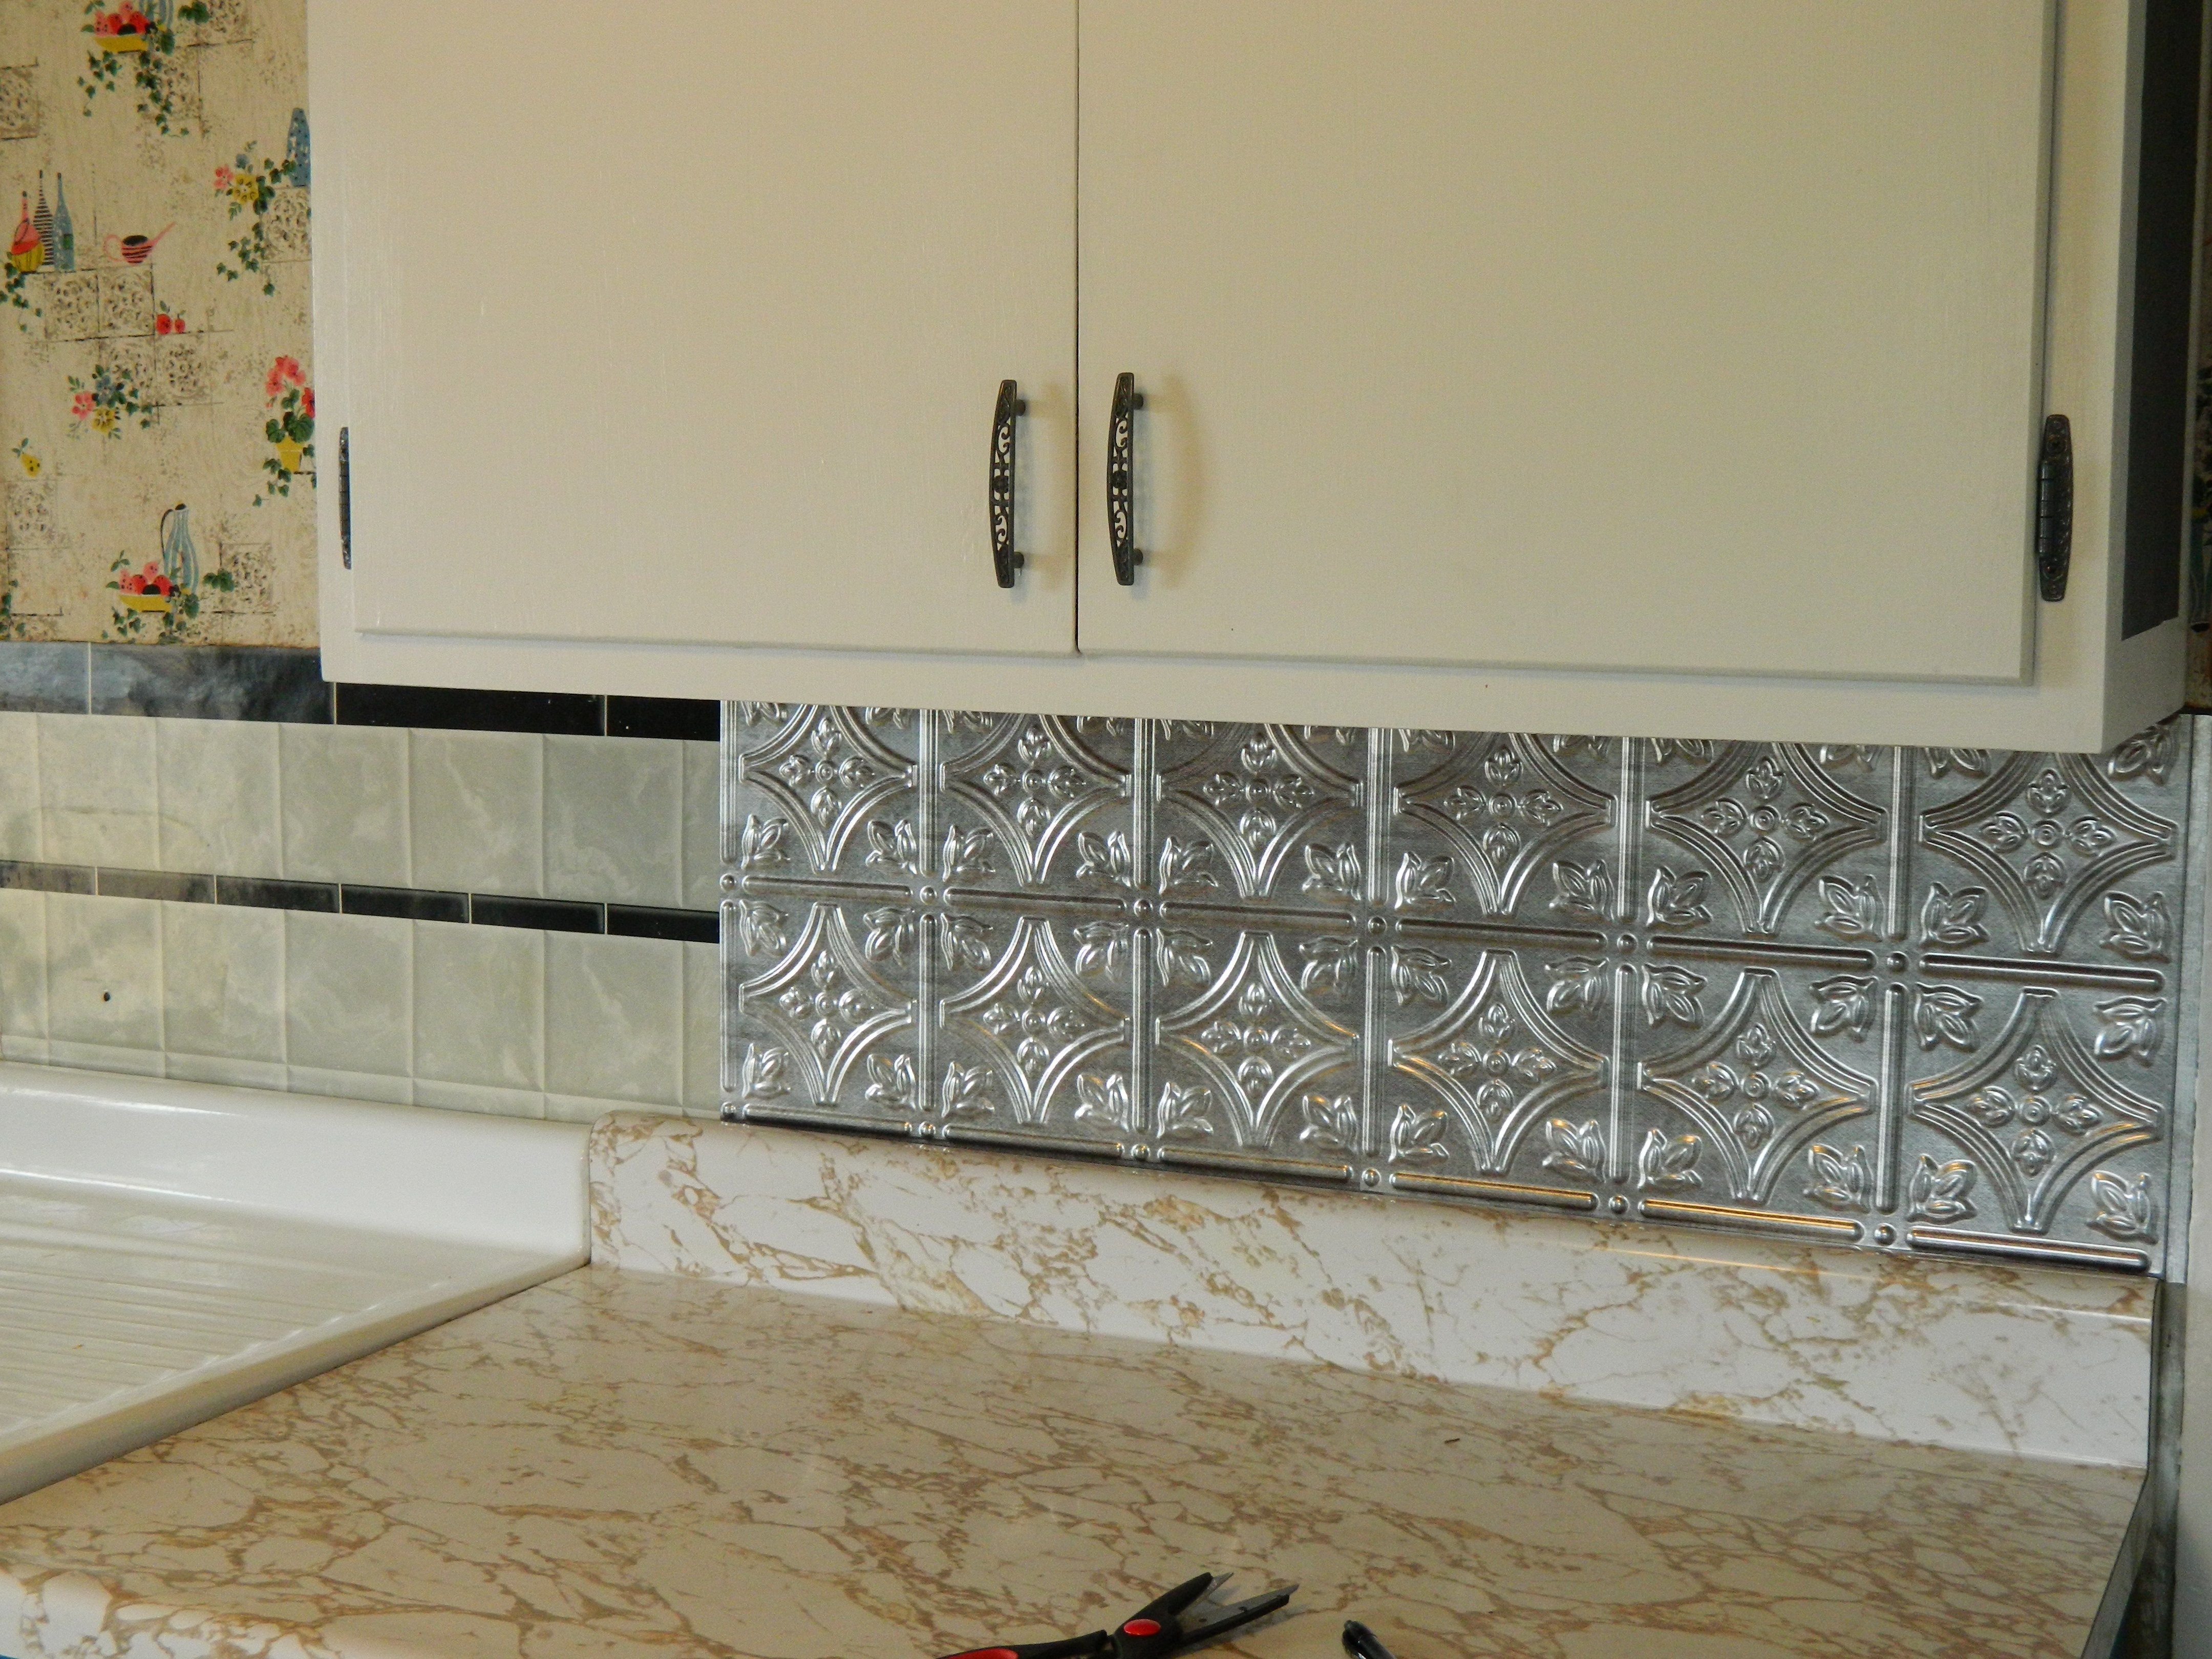 - DIY: 5 Steps To Kitchen Backsplash – No Grout Involved Sierra Shea